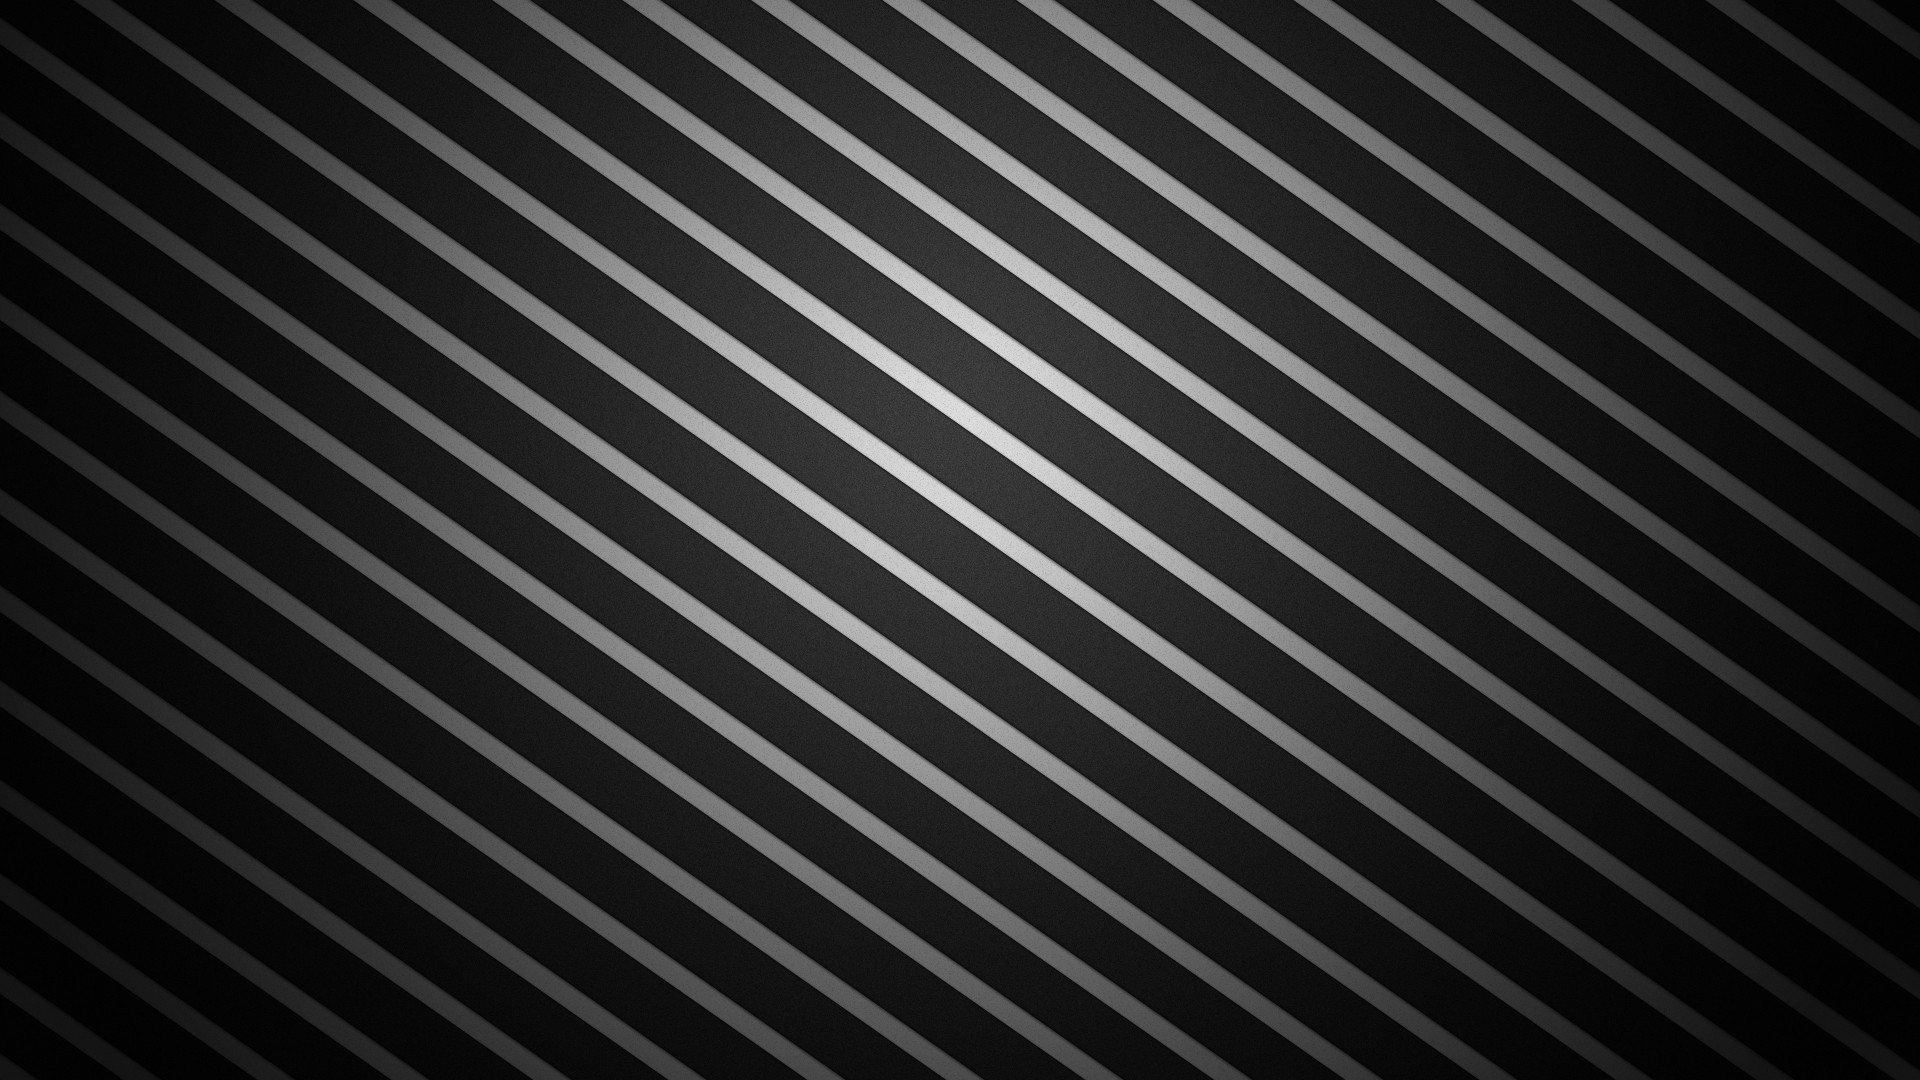 Free Download Download Abstract Black White Line Wallpaper Full Hd